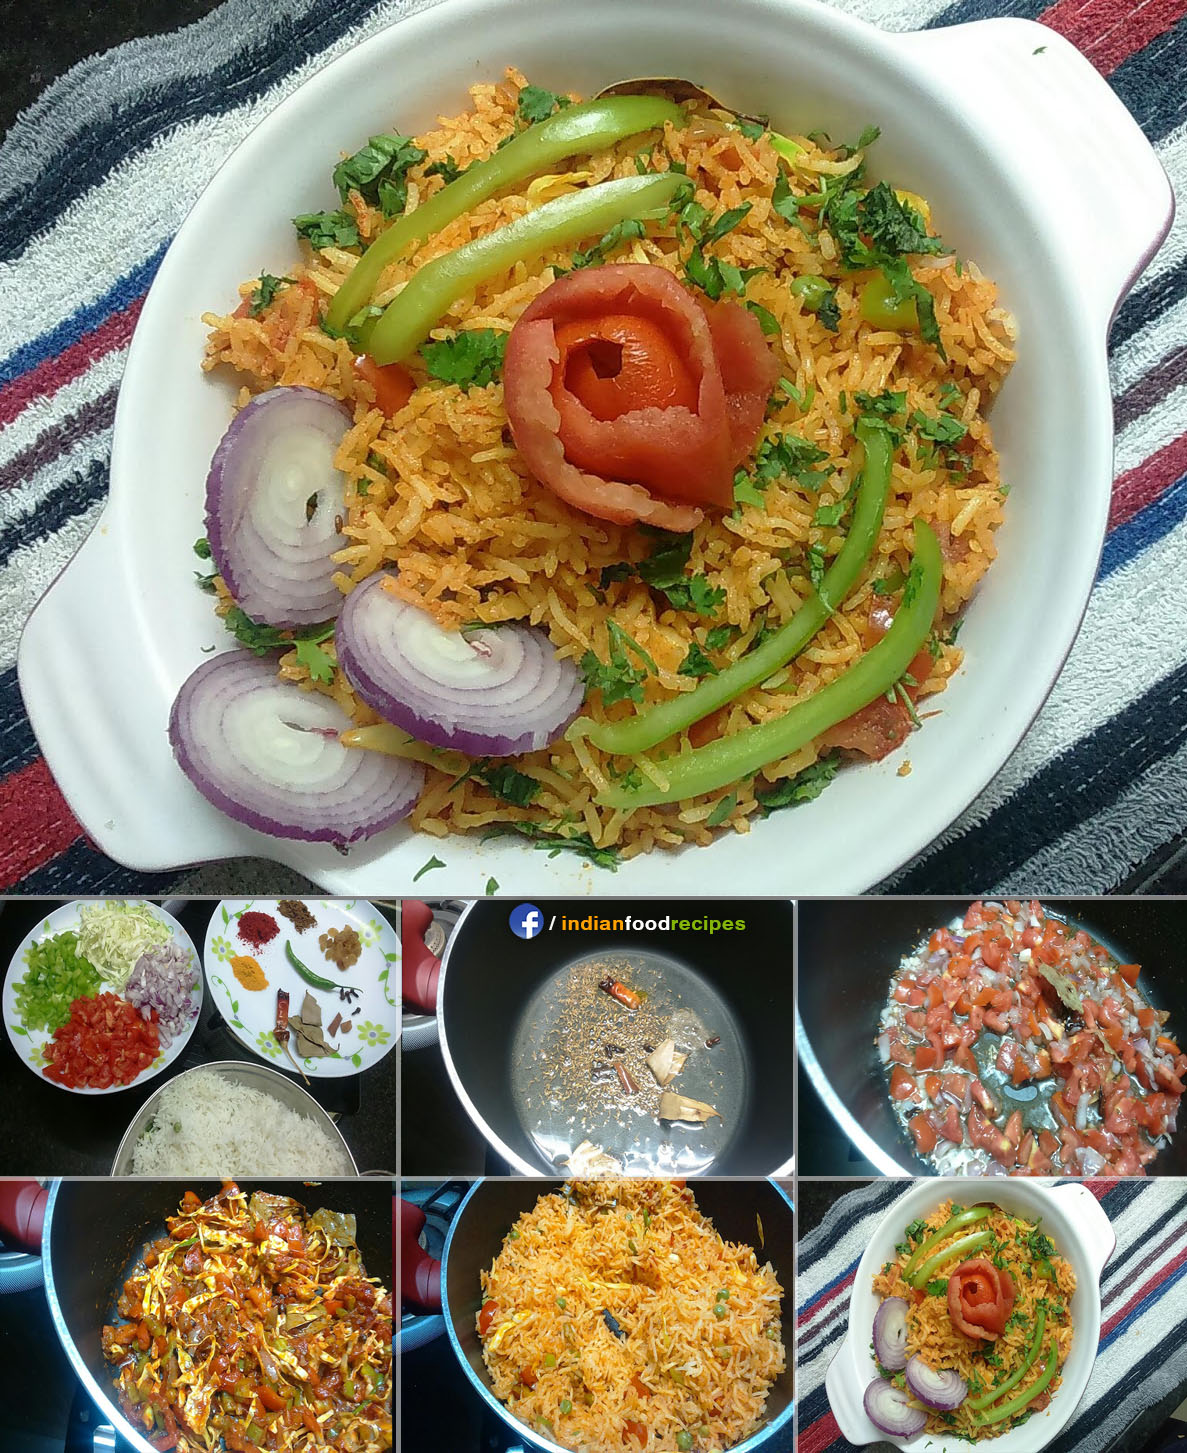 Spicy Veg Pulao recipe step by step pictures